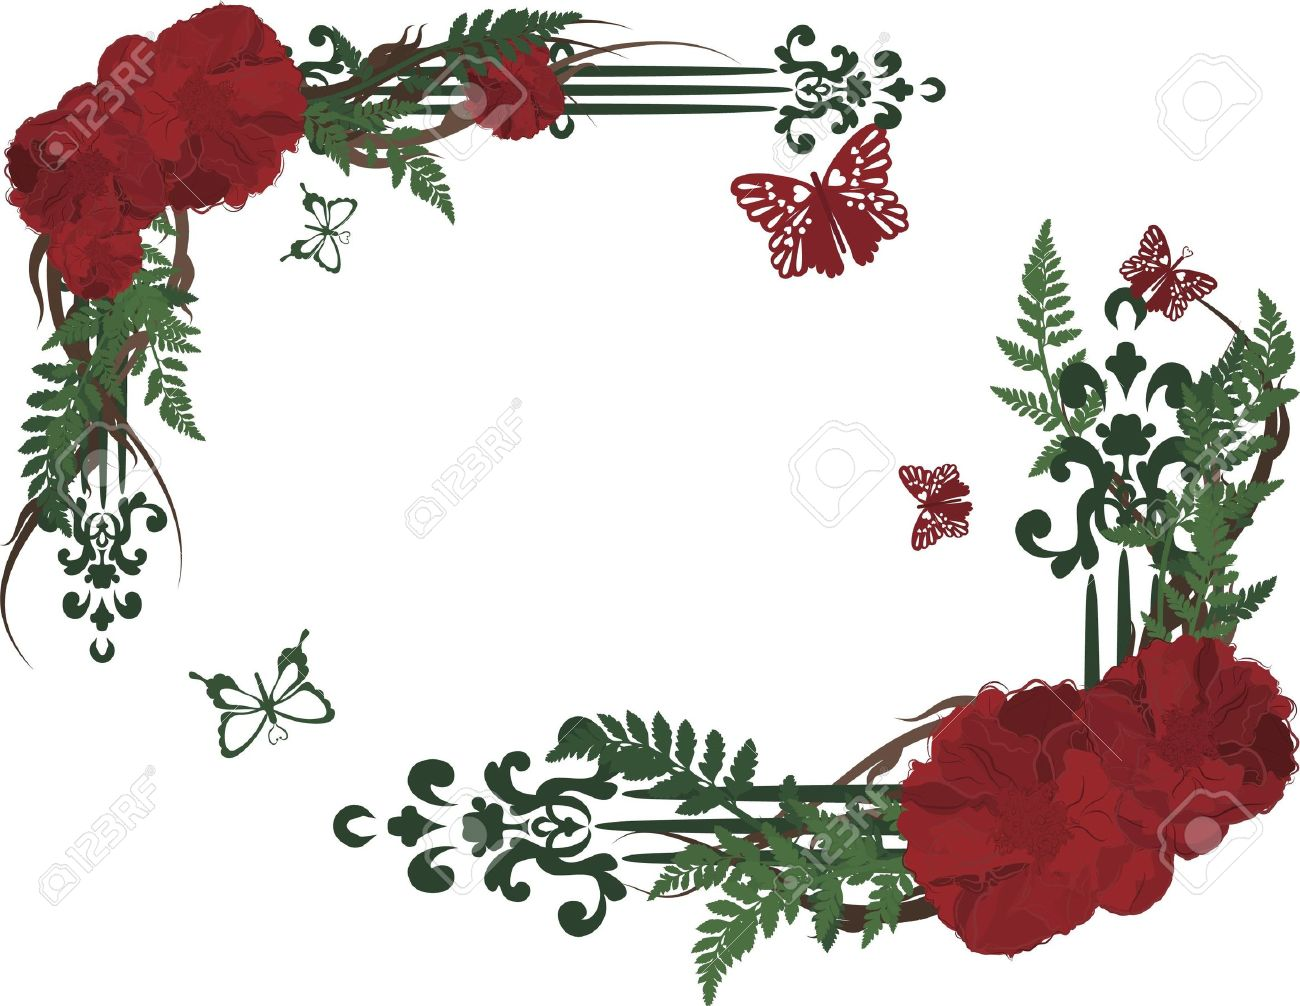 Drawing Of Rose Frame Elements With Butterflies. Stock Photo ...